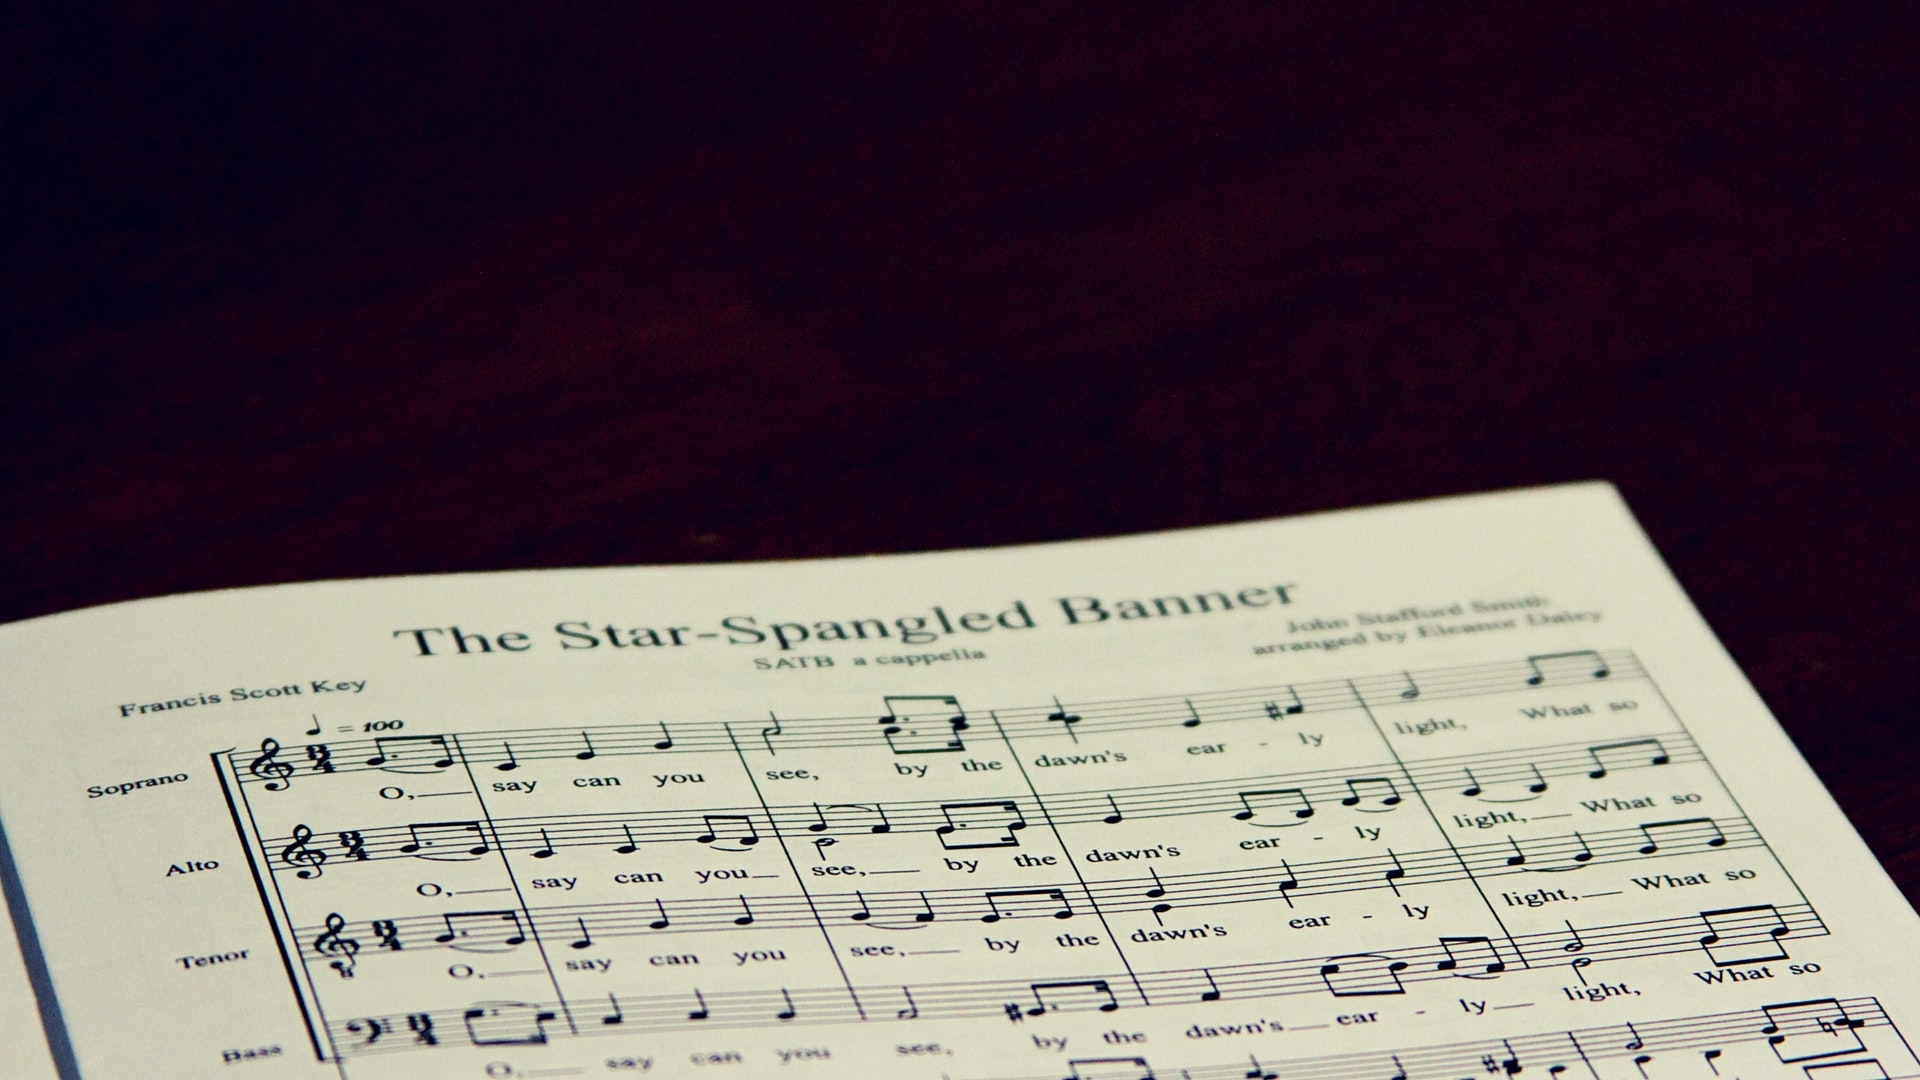 A close-up of a song sheet to The Star-Spangled Banner